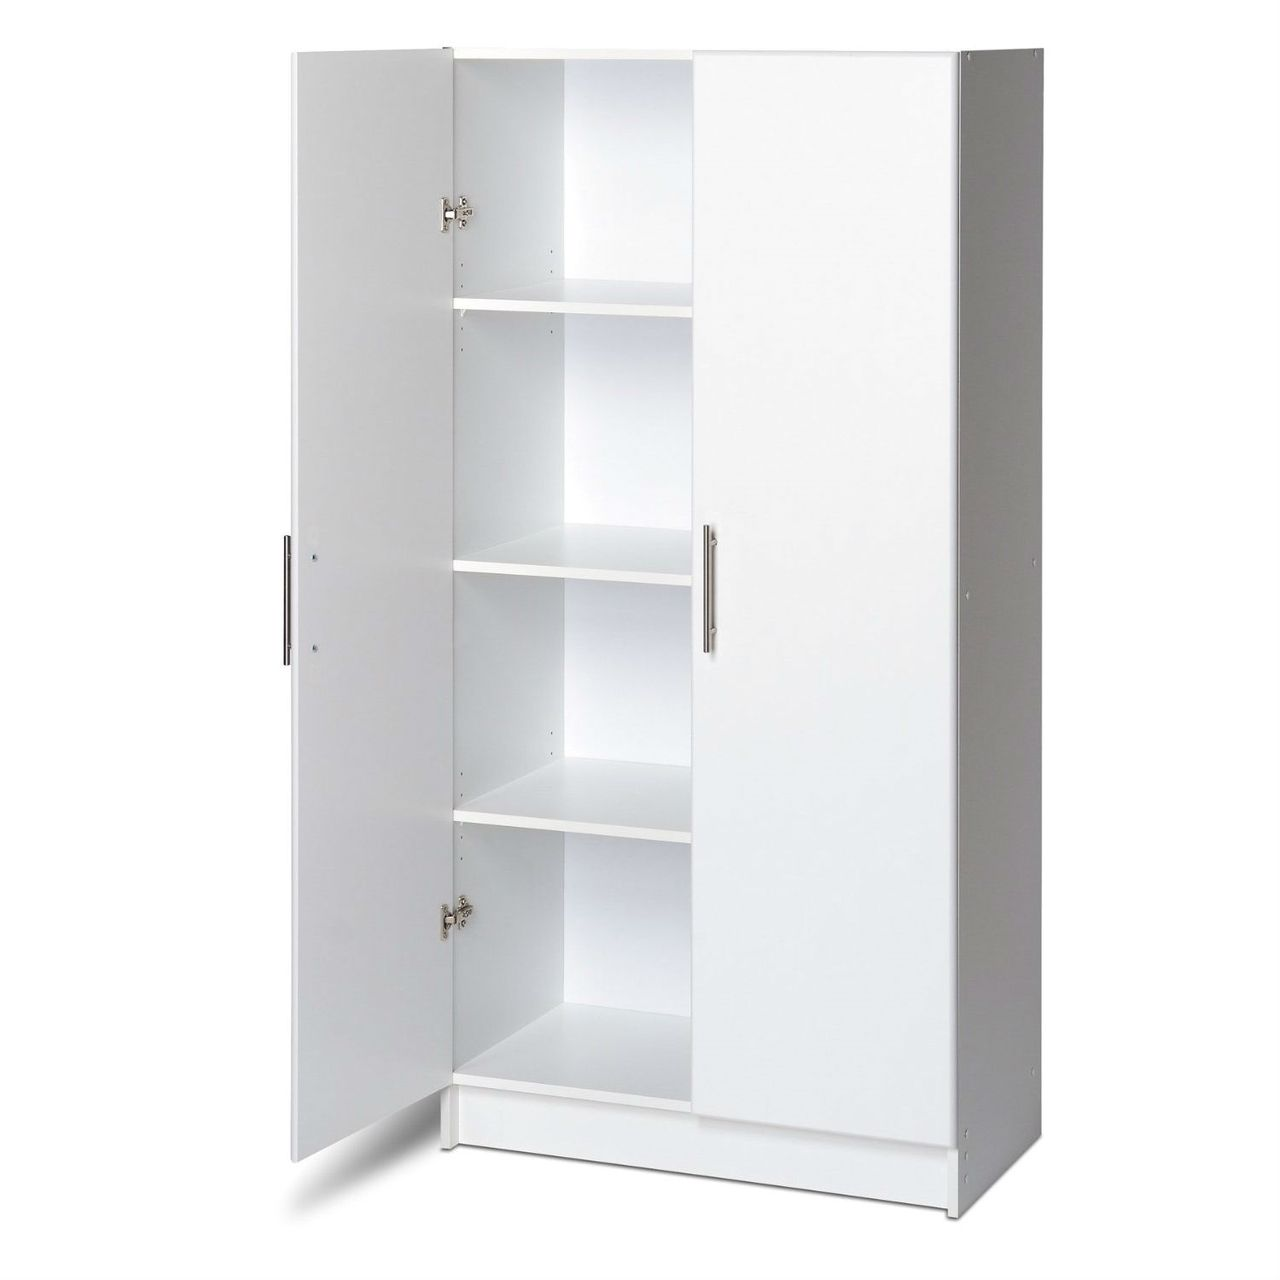 White Storage Cabinet Utility Garage Home Office Kitchen Bedroom White Storage Cabinets Wardrobe Storage Cabinet White Storage